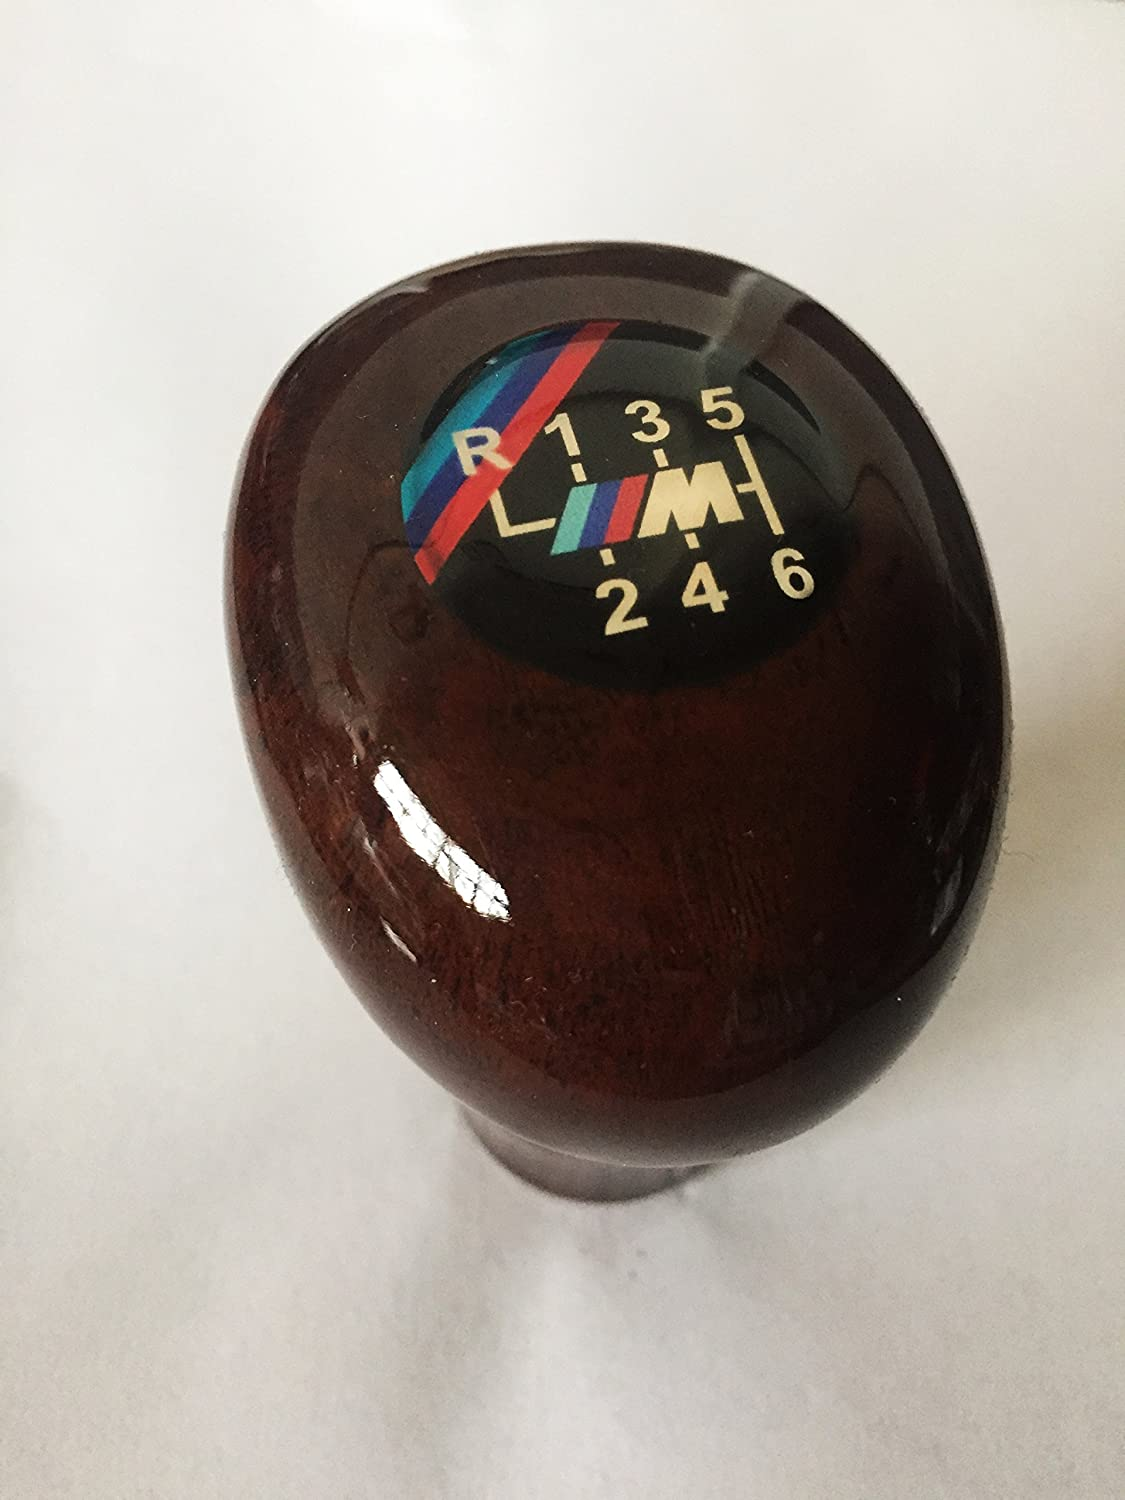 9 no hacoll TECHNIC for BMW 6 Speed Wood Gear Shift KNOB E36 E46 E39 E30 E60 E90 E92 E91 E46 M3 M5 M6 Z4